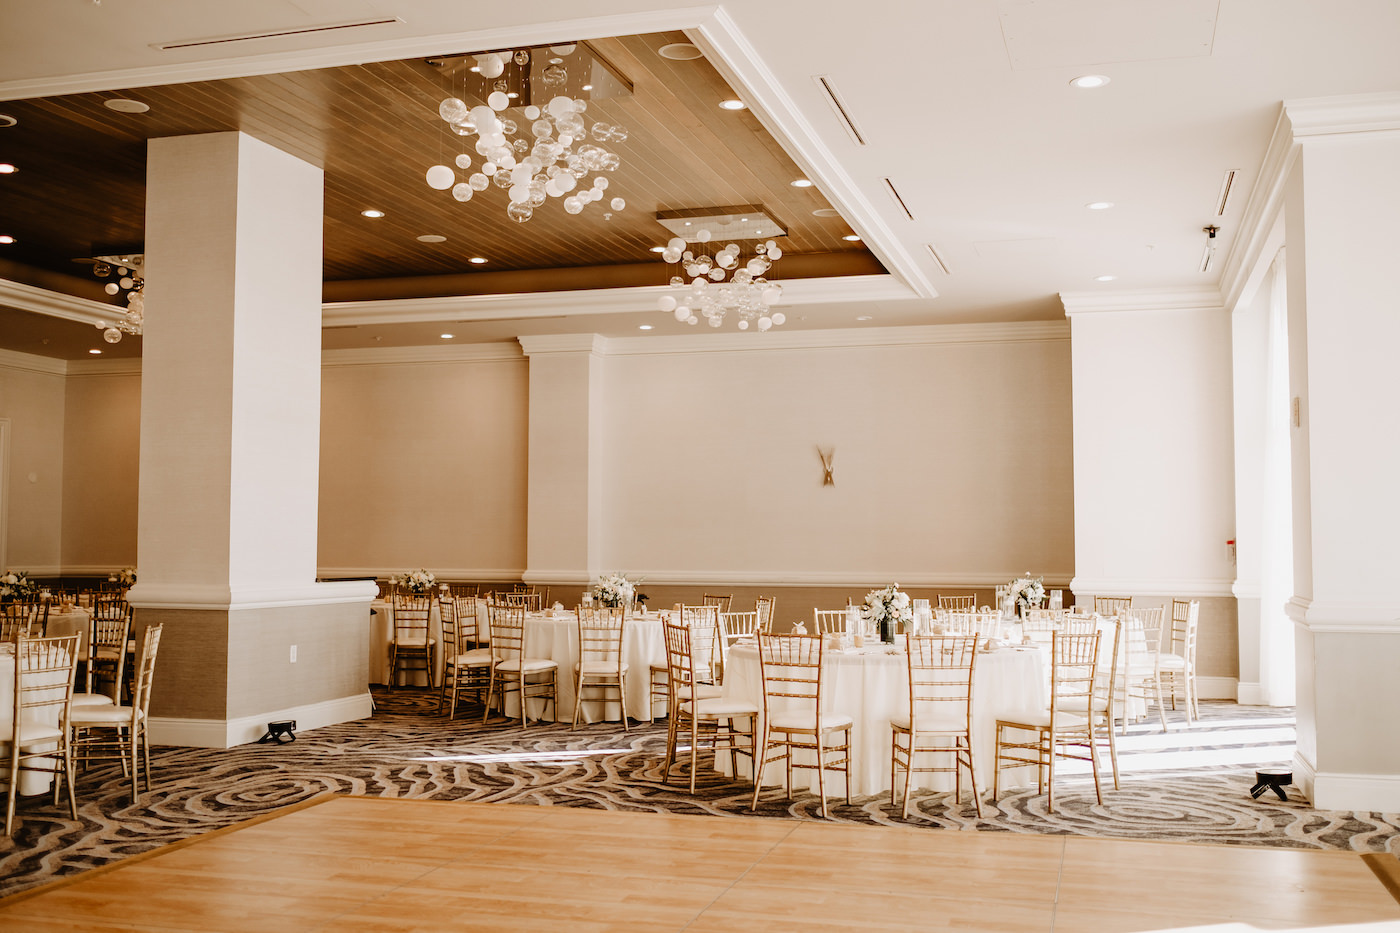 Clearwater Wedding Venue Hyatt Regency Clearwater Beach Hotel   Ballroom Reception with White Table Linens and Gold Chiavari Chairs and Wood Dance Floor with Glass Bubble Chandeliers